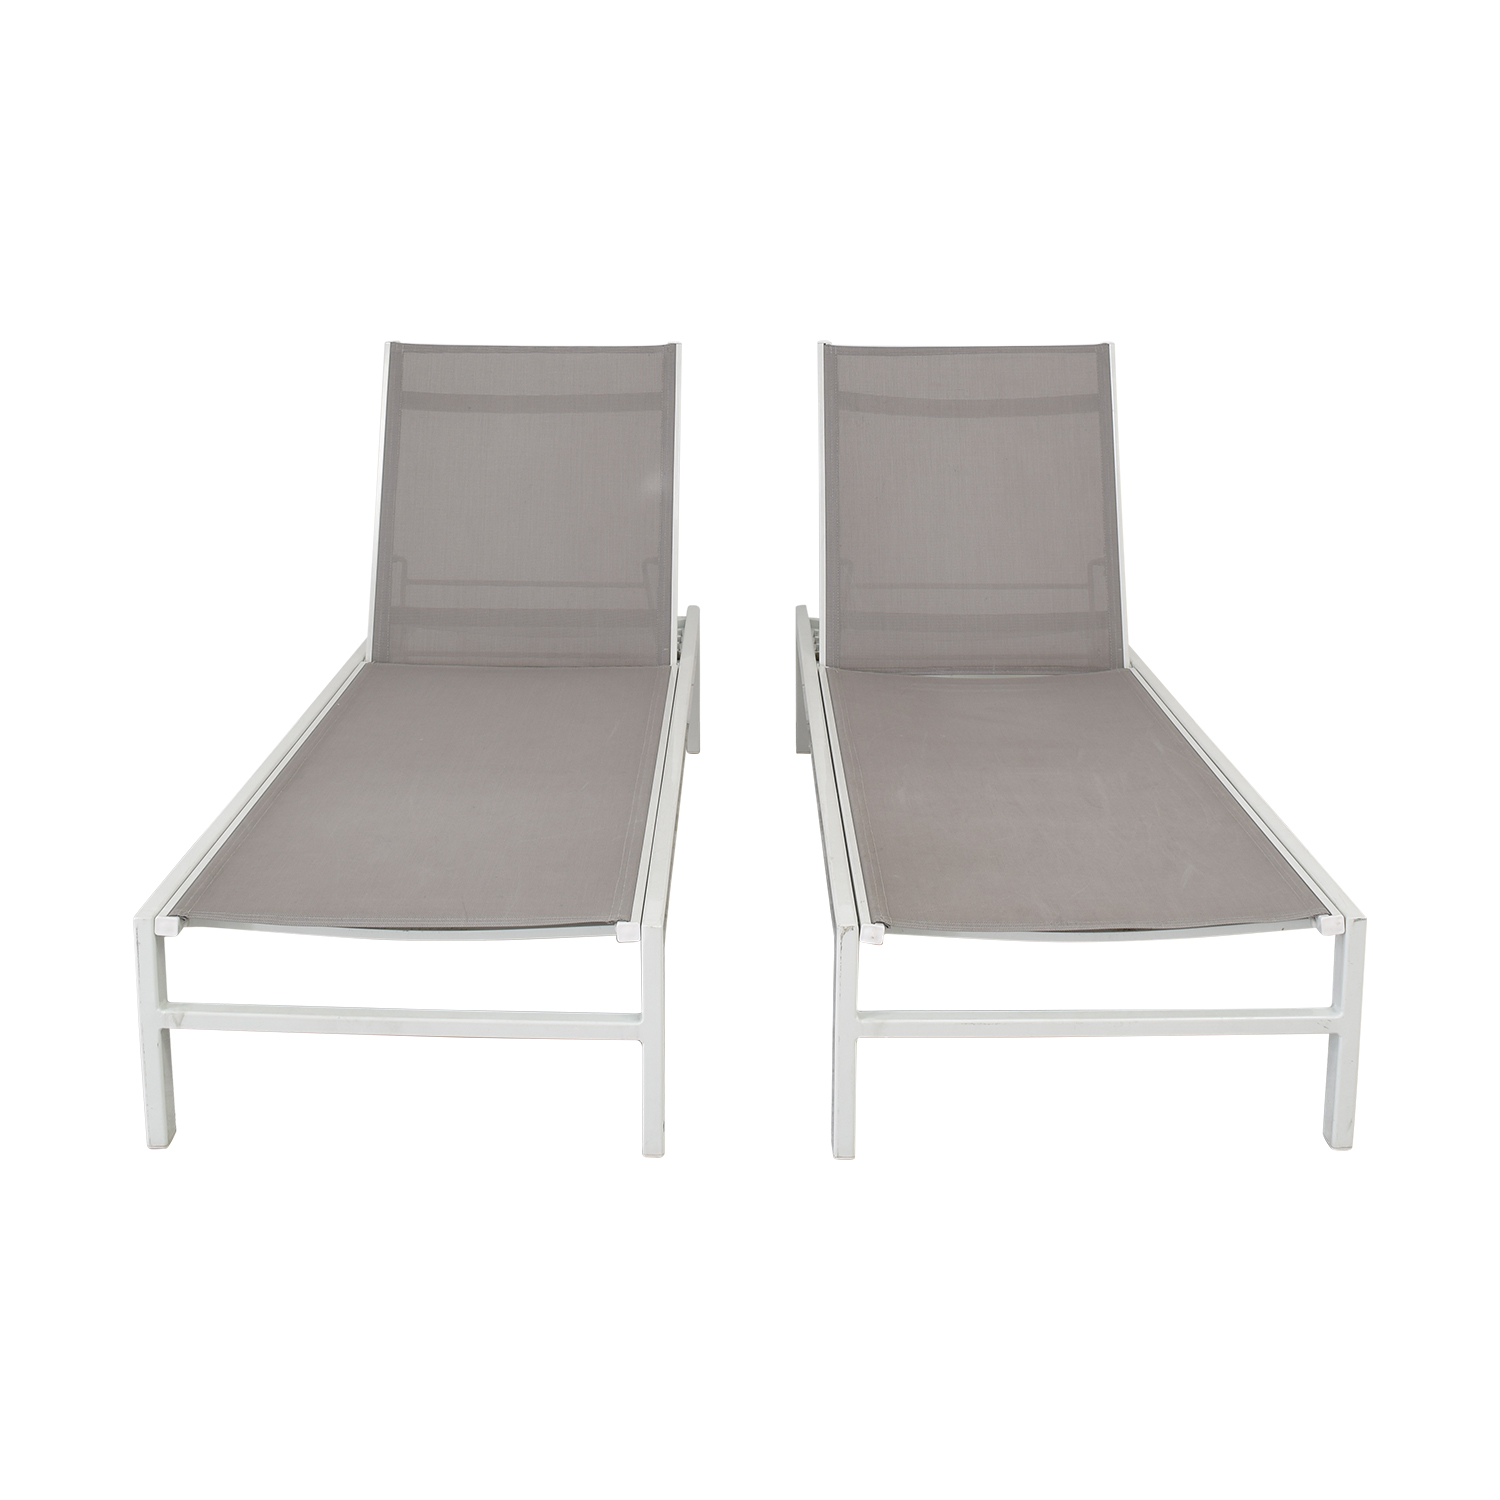 CB2 CB2 Idle Outdoor Chaise Lounges for sale